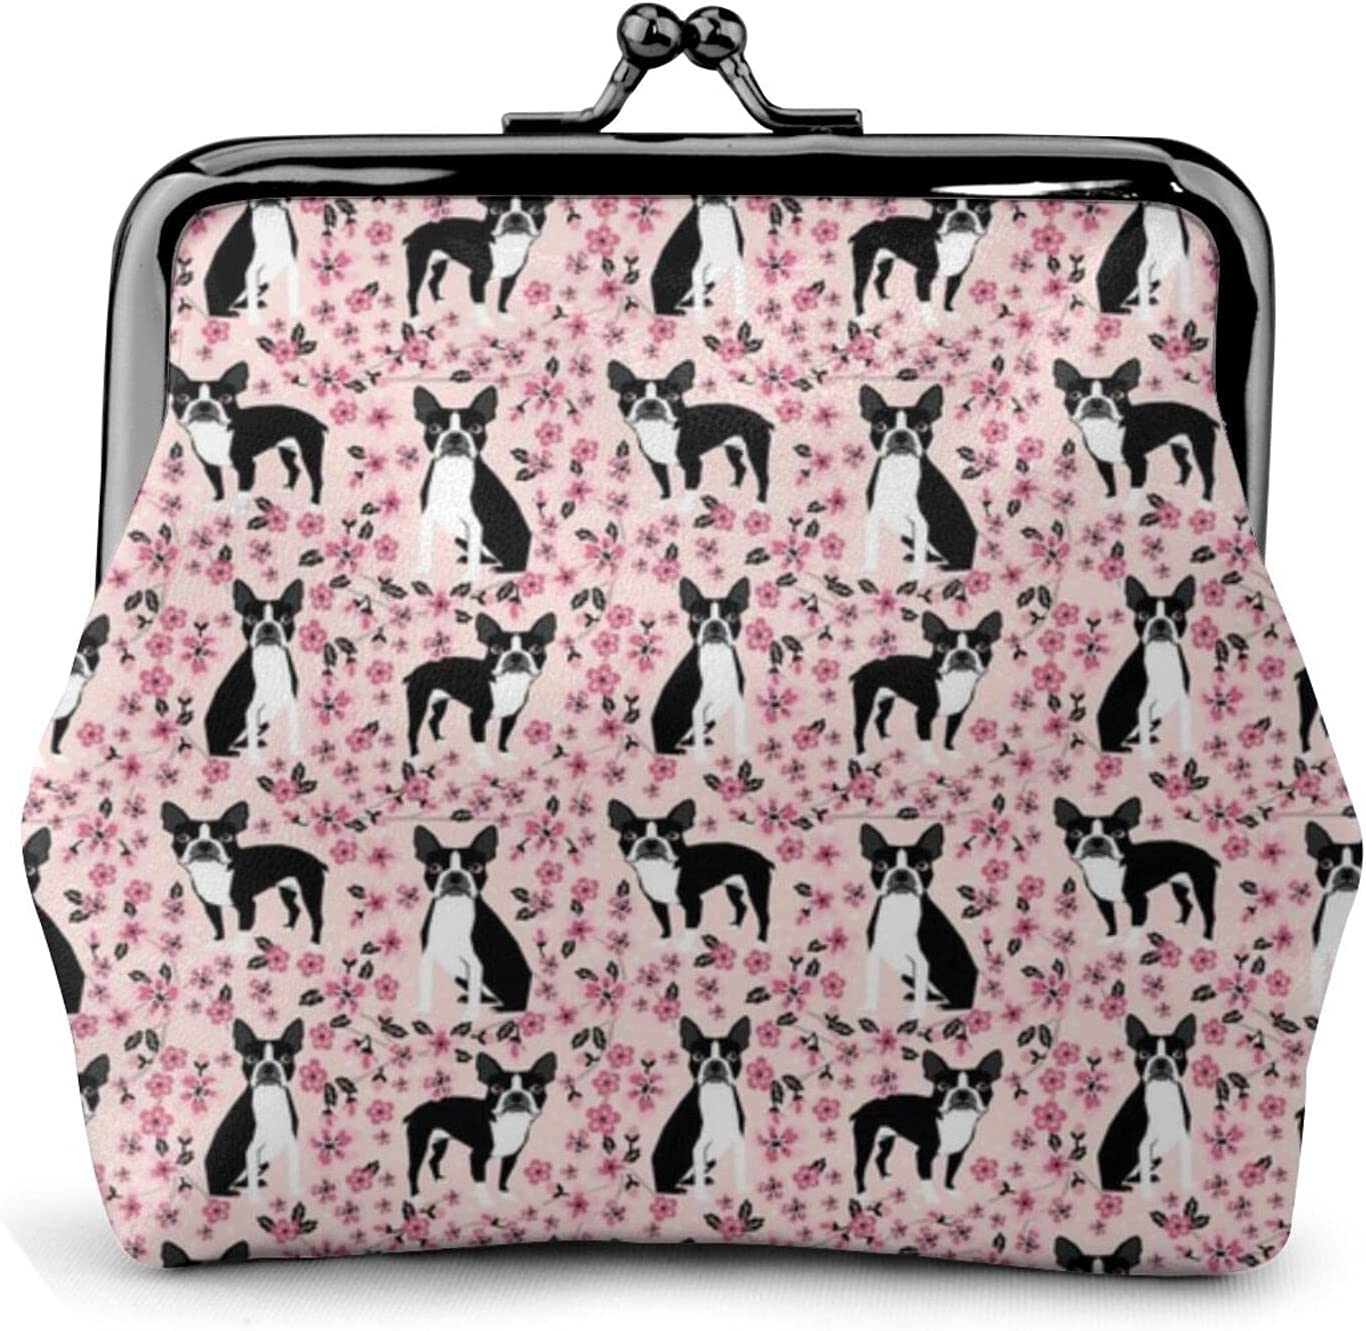 Boston Terrier Cherry 948 Leather Coin Purse Kiss Lock Change Pouch Vintage Clasp Closure Buckle Wallet Small Women Gift